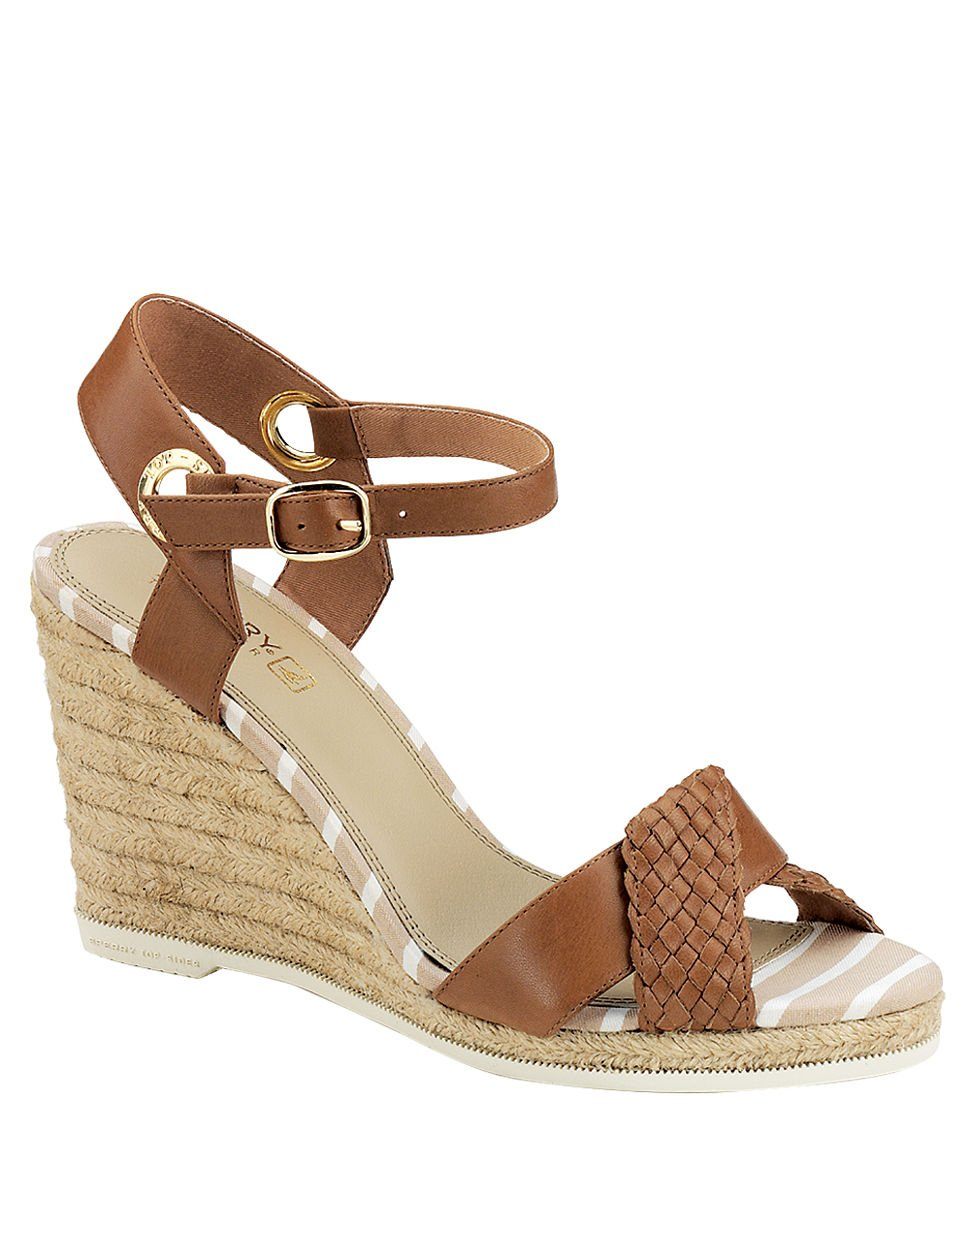 sperry top sider saylor wedge sandals in brown lyst